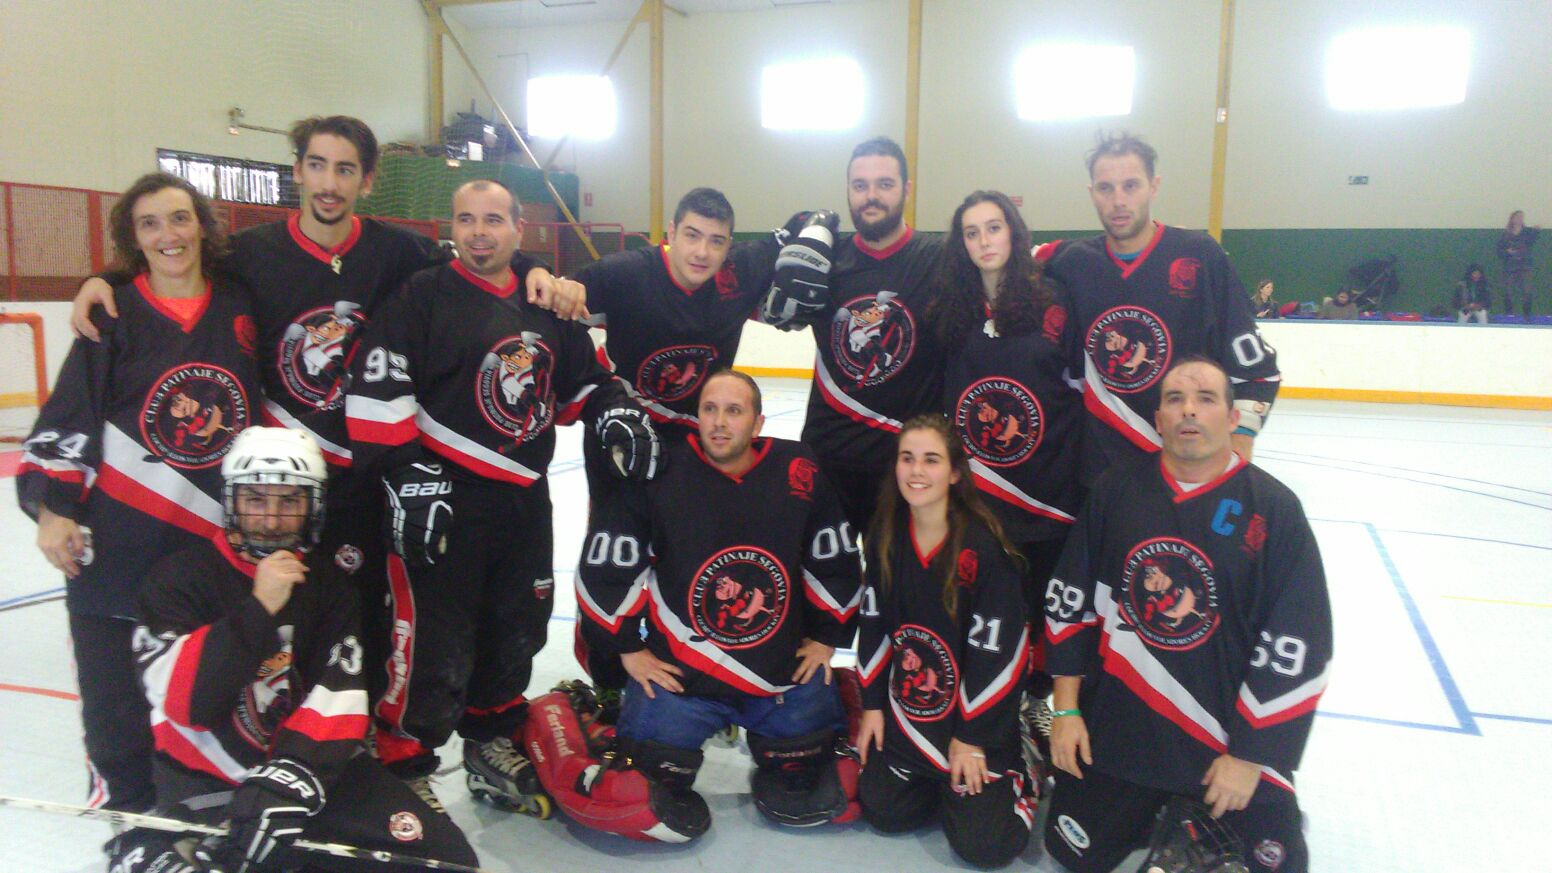 EQUIPO SENIOR HOCKEY LINEA